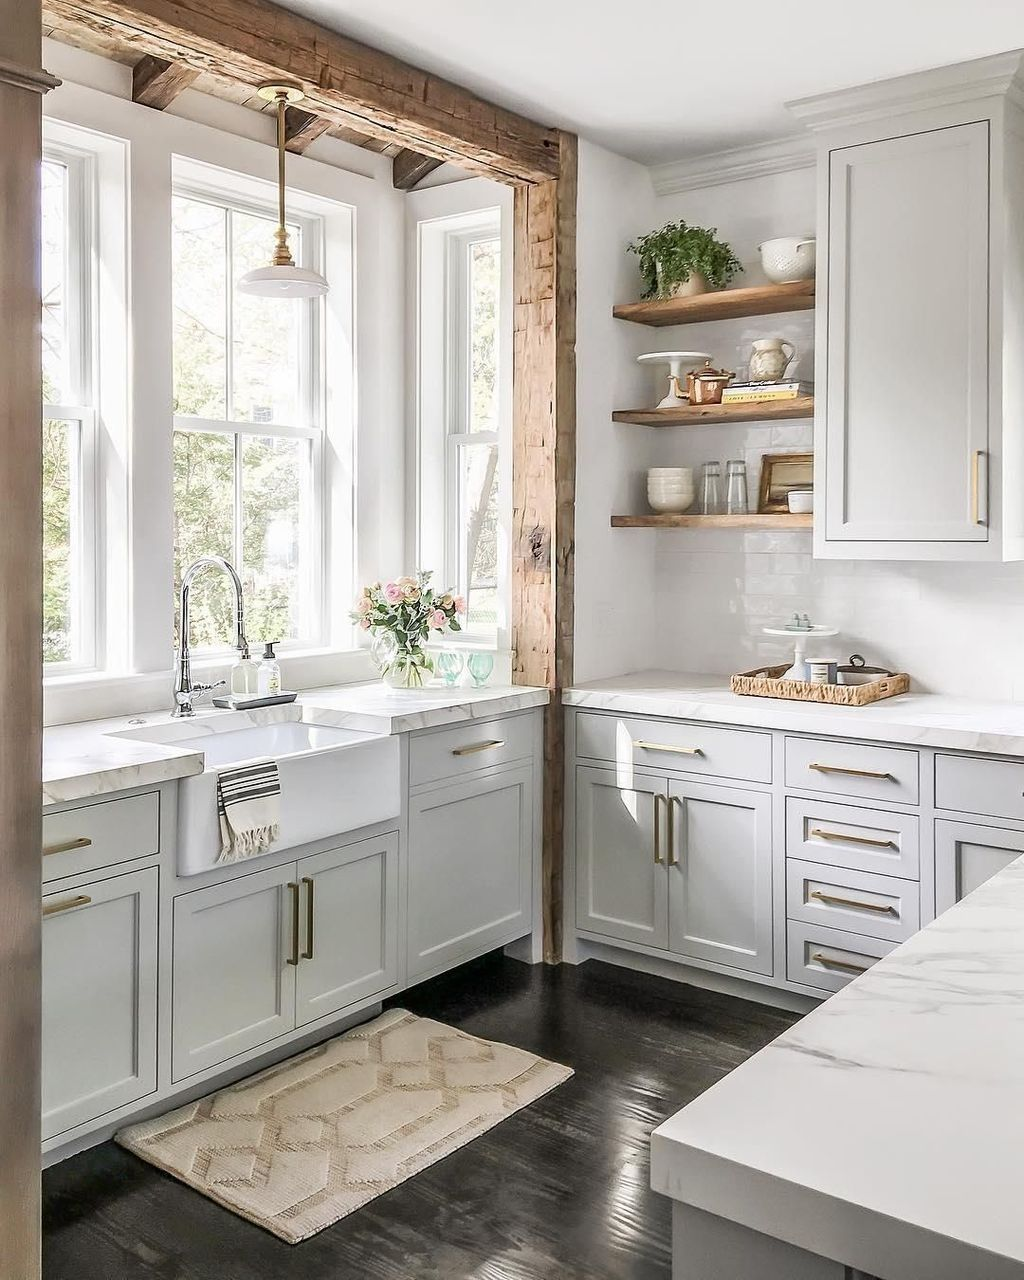 44 Gorgeous Farmhouse Kitchen Cabinets Decor and Design Ideas to Fuel Your Remodel kitchen #44 #gorgeous #farmhouse #kitchen #cabinets #decor #and #design #ideas #to #fuel #your #remodel